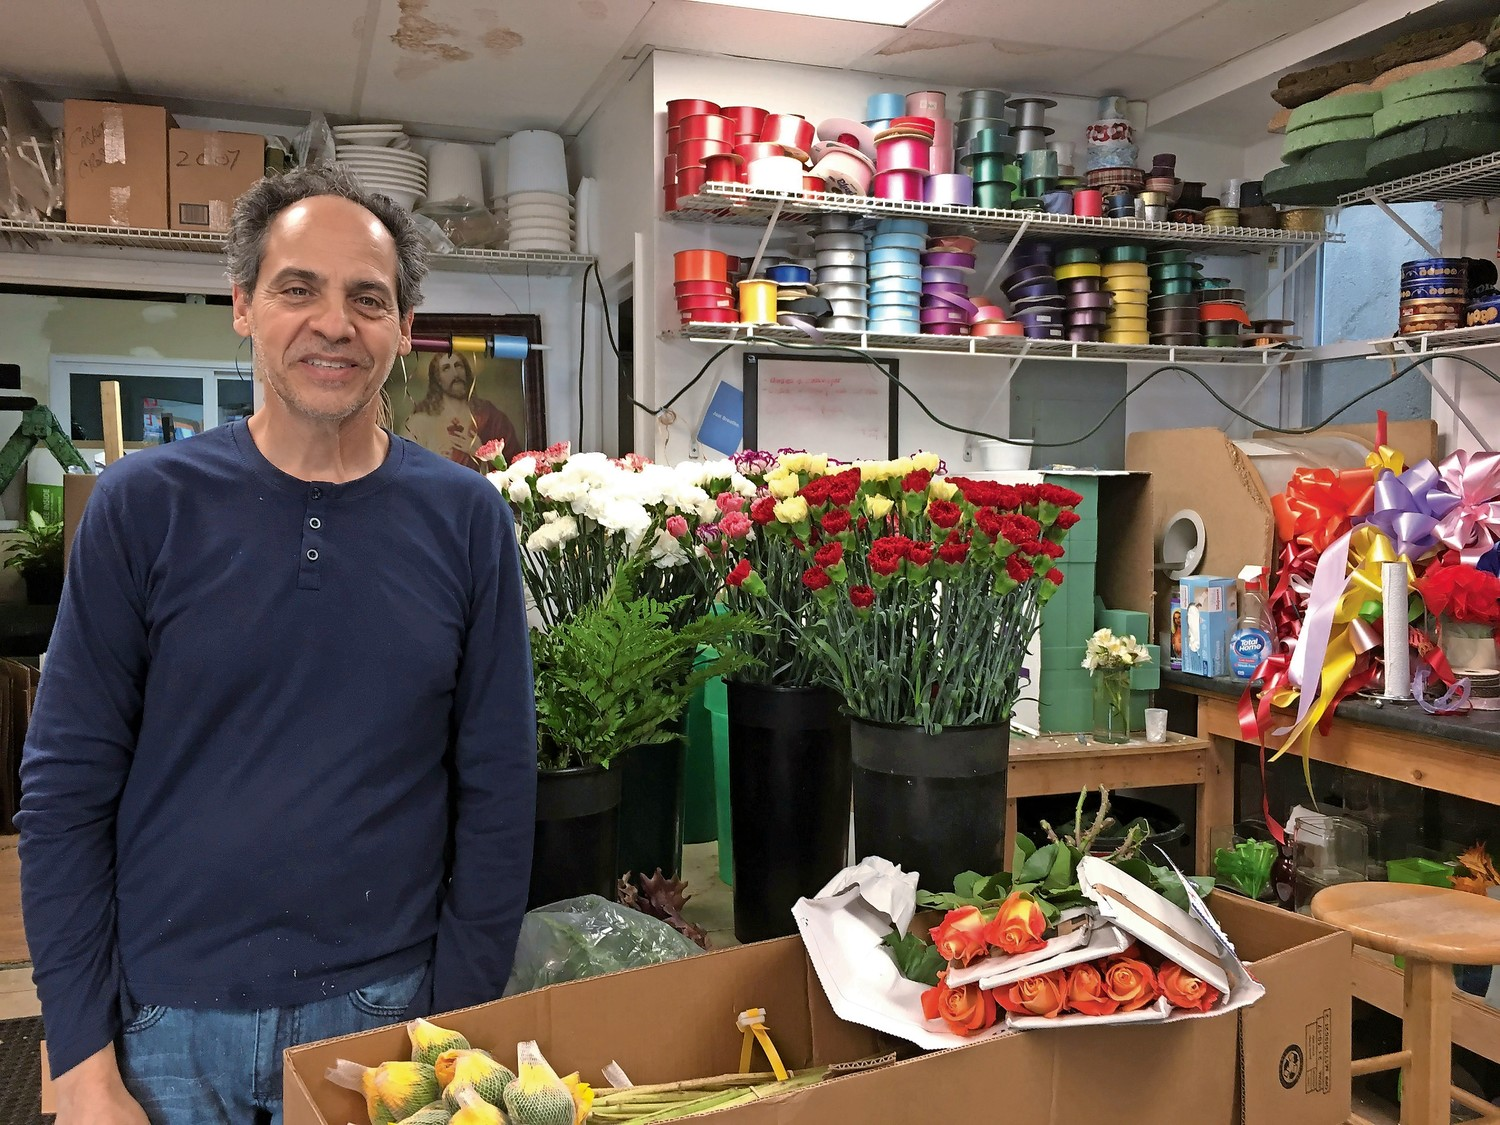 Anthony Lombardo, the owner of East Rockaway Florist, hopes to attract more customers to his store this holiday season with original arrangements and discounts.